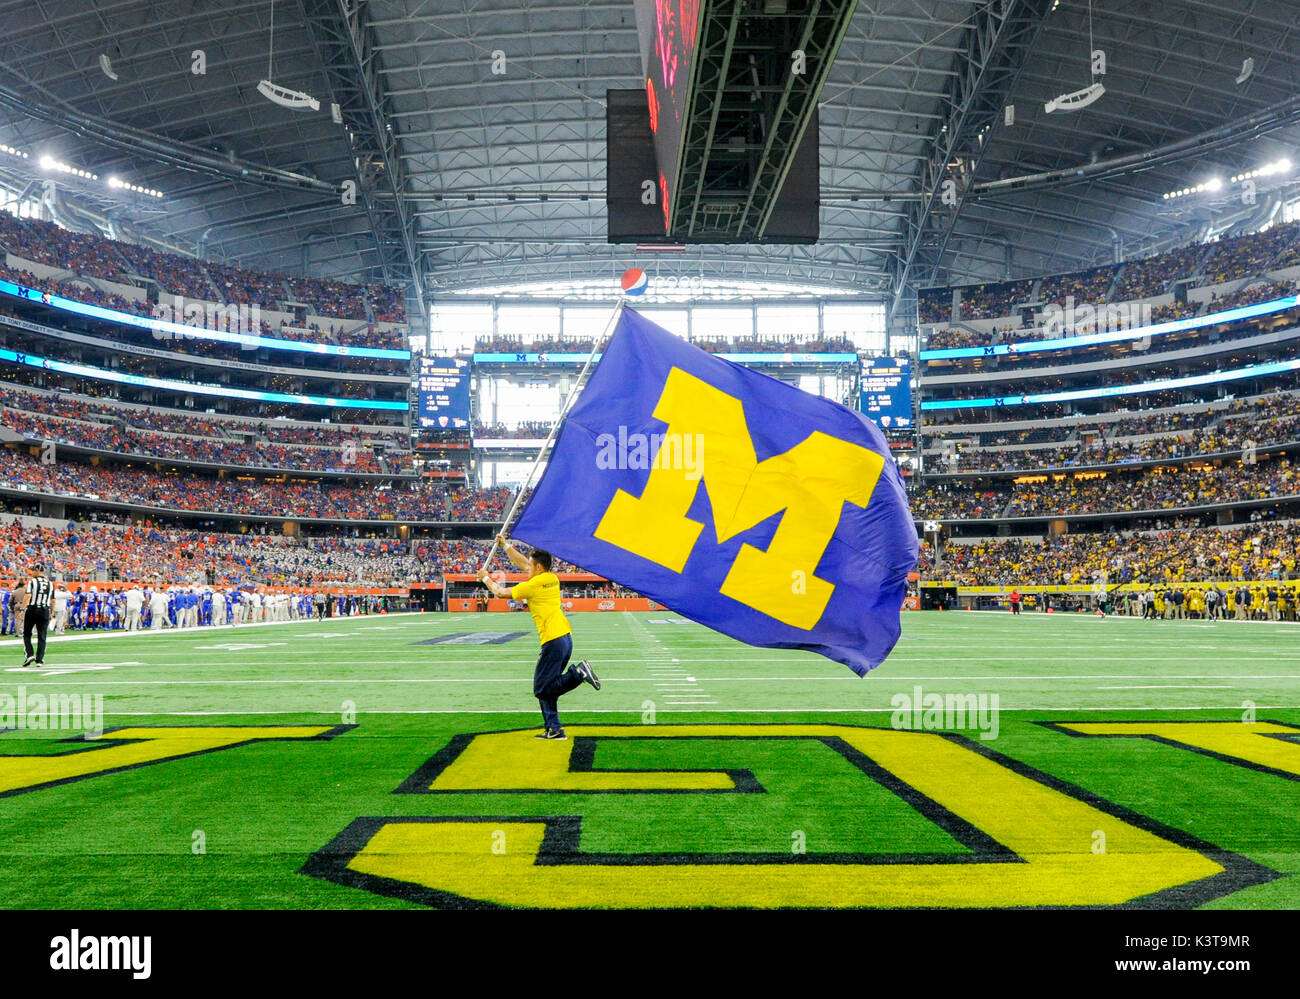 September 02, 2017: A Michigan Wolverines flag runner crosses the end zone after a first quarter touchdown during the Advocare Classic NCAA Football game between the University of Michigan Wolverines and the University of Florida Gators at AT&T Stadium in Arlington, TX Michigan defeated Florida 33-17 Albert Pena/CSM - Stock Image